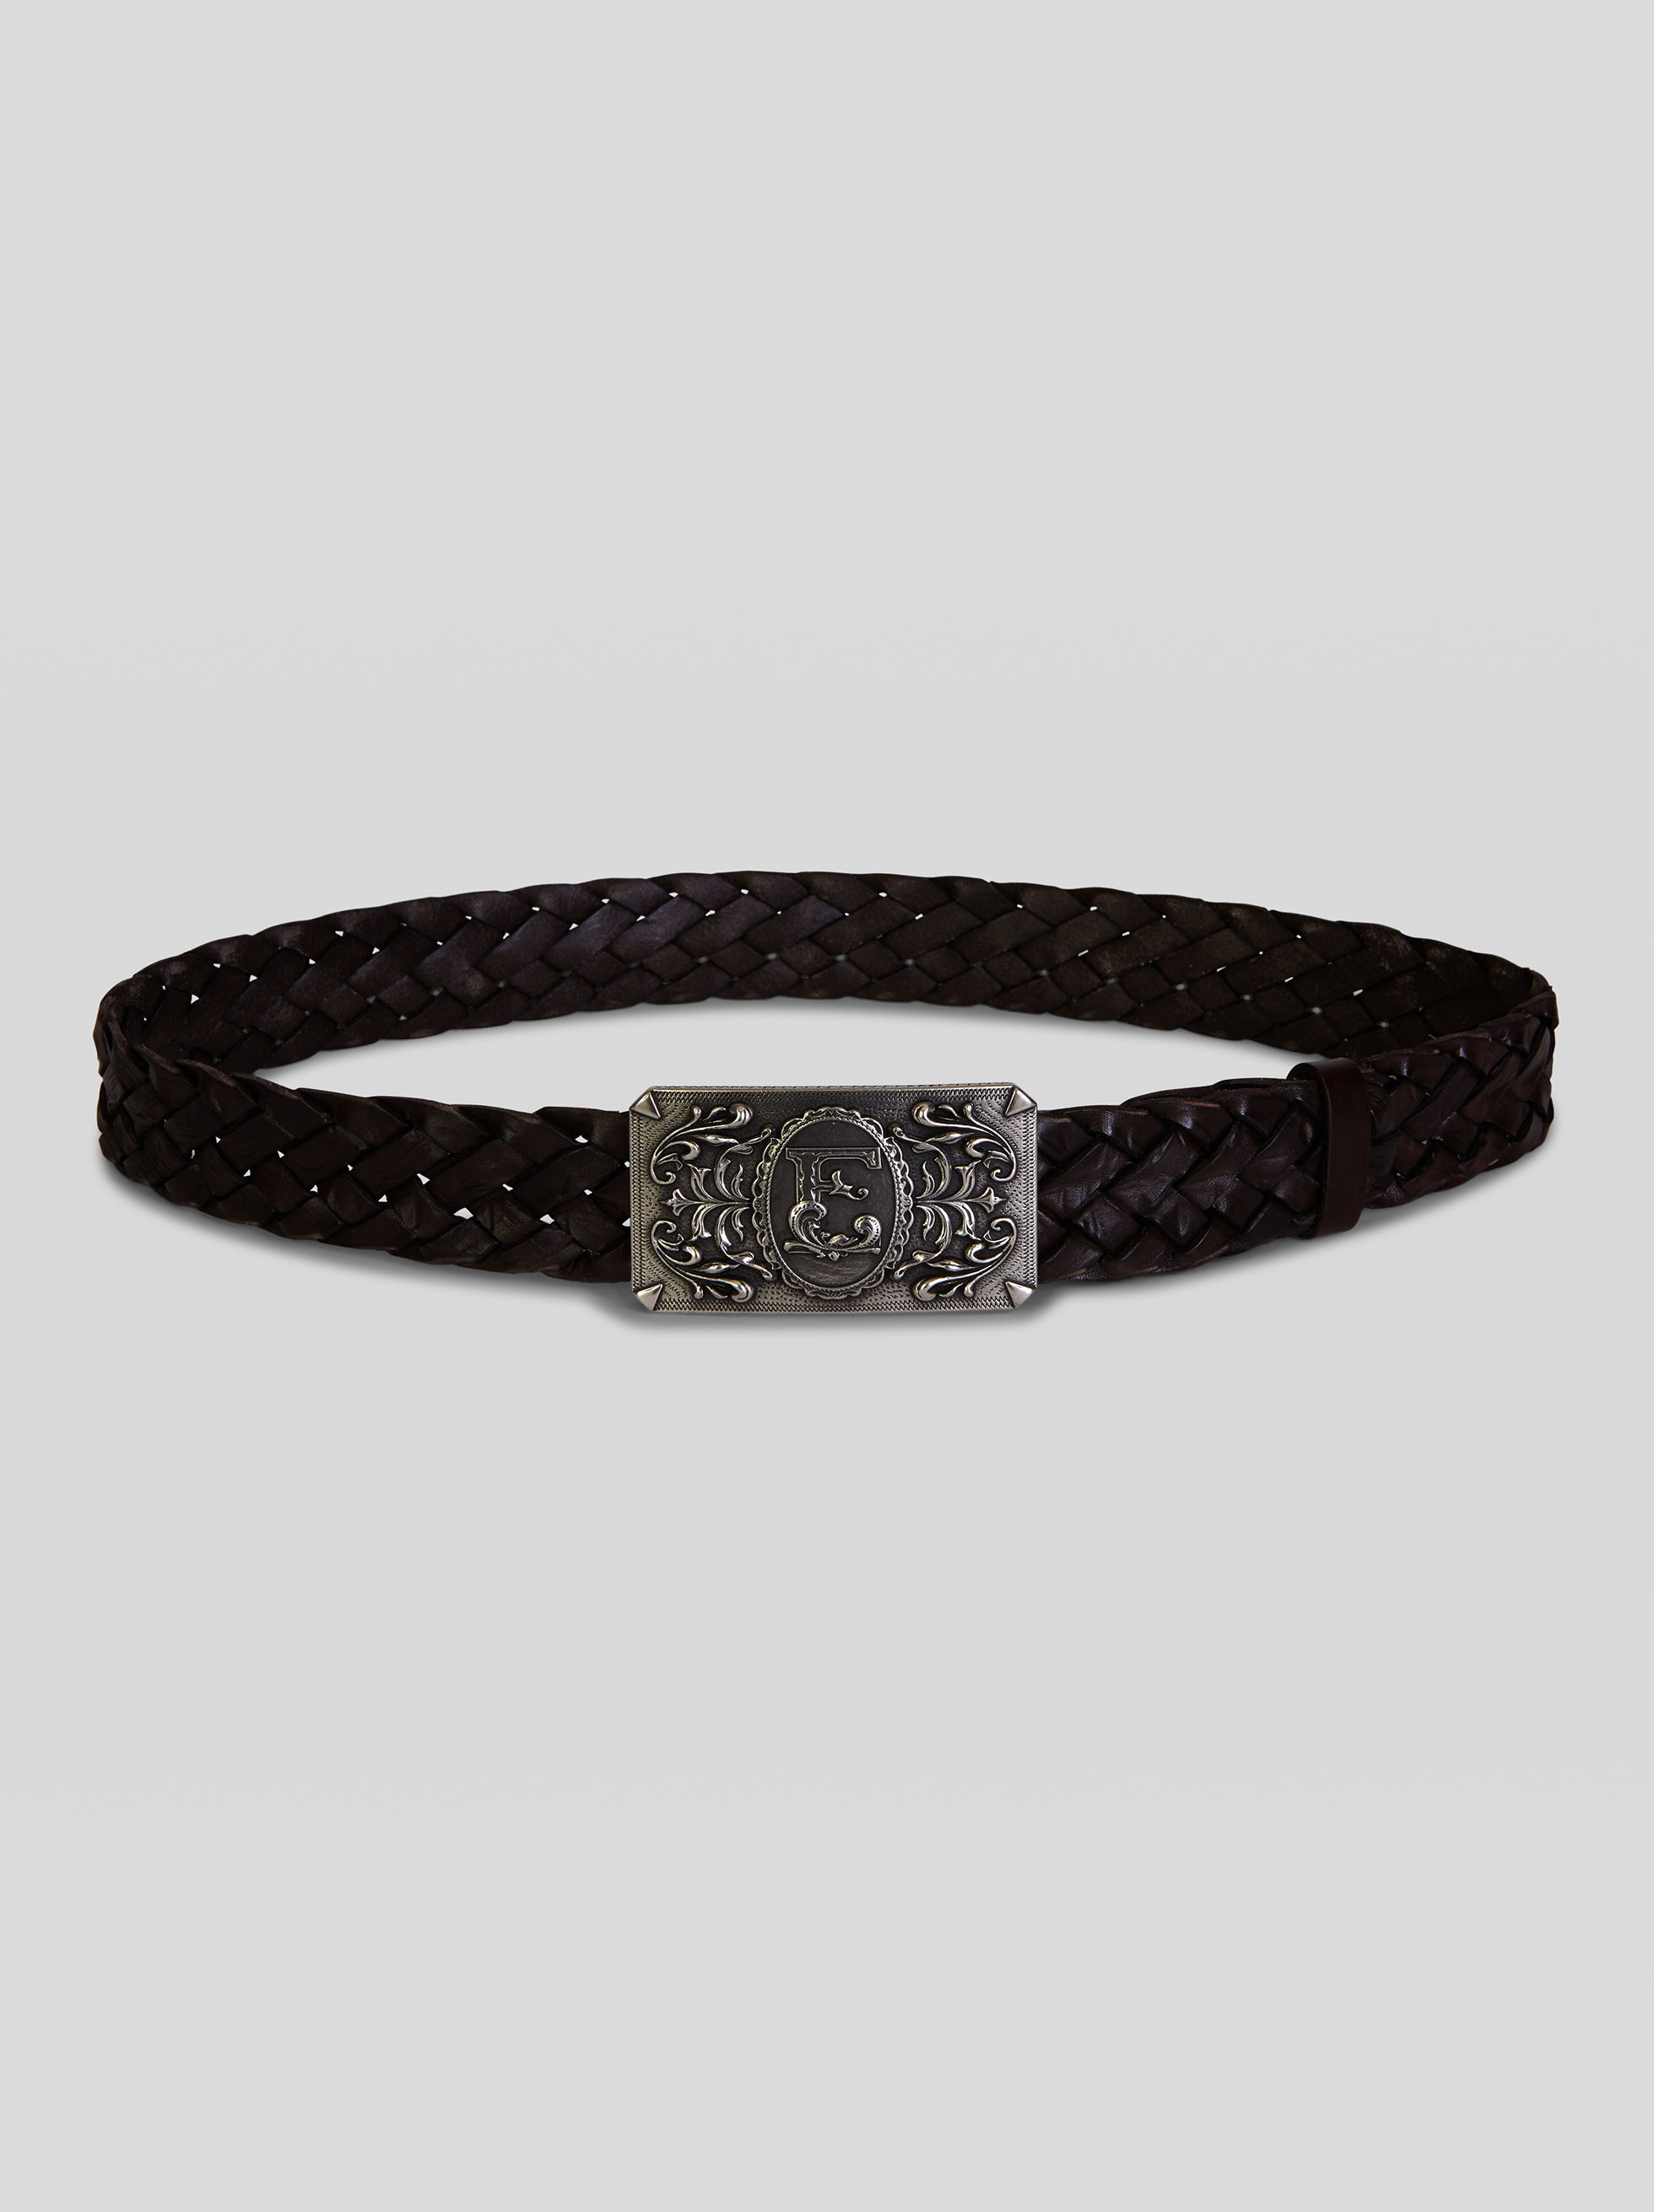 WOVEN LEATHER BELT WITH HERALDIC ETRO BUCKLE